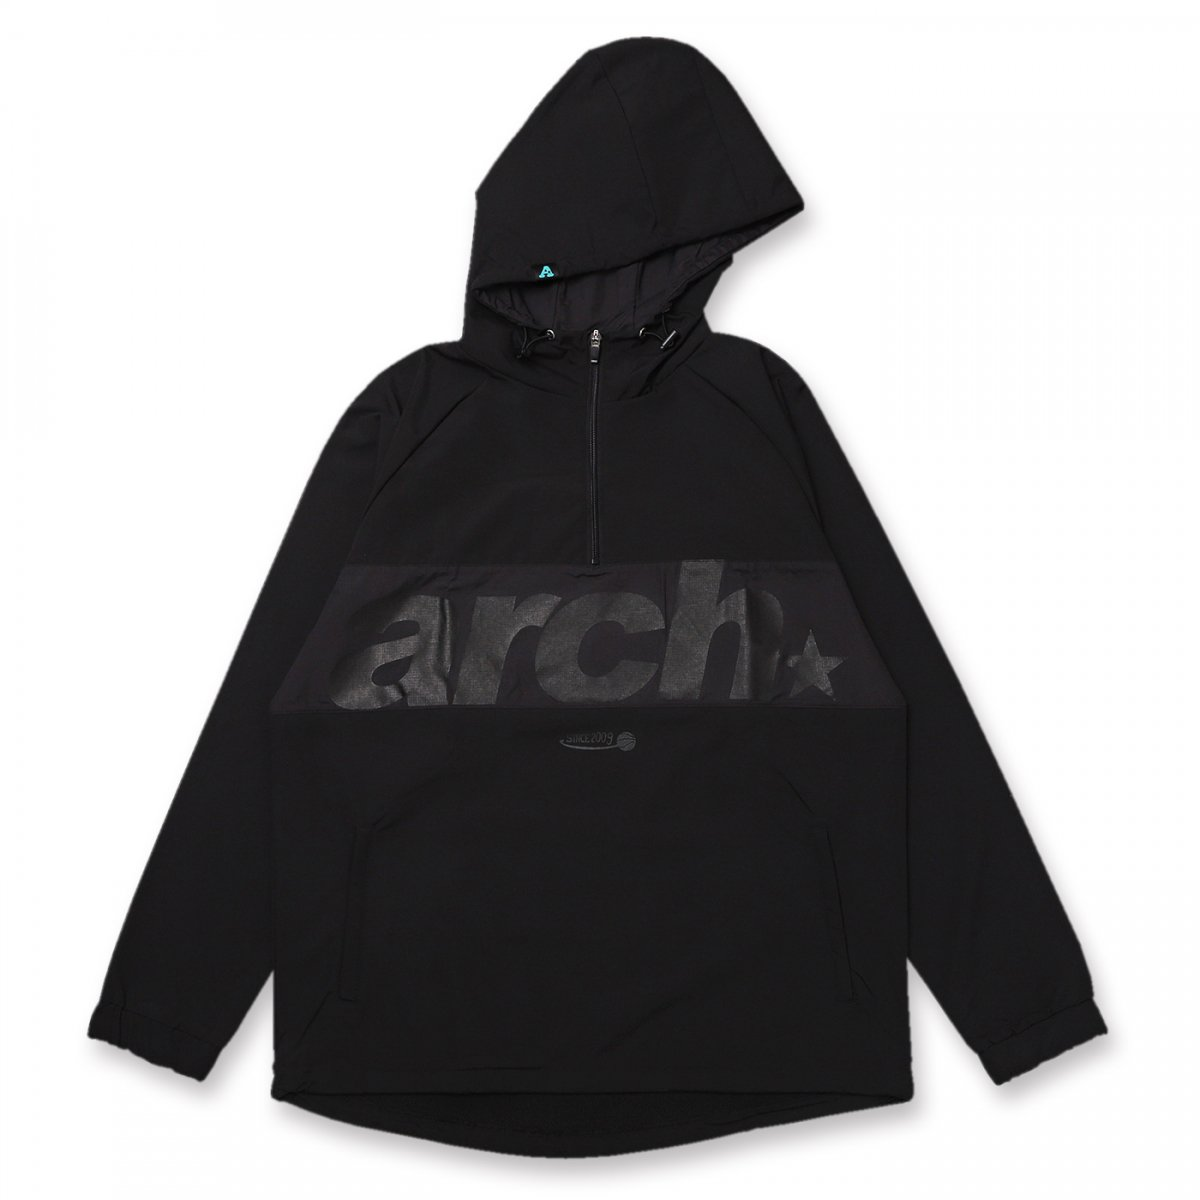 sporty logo anorak jacket【black】